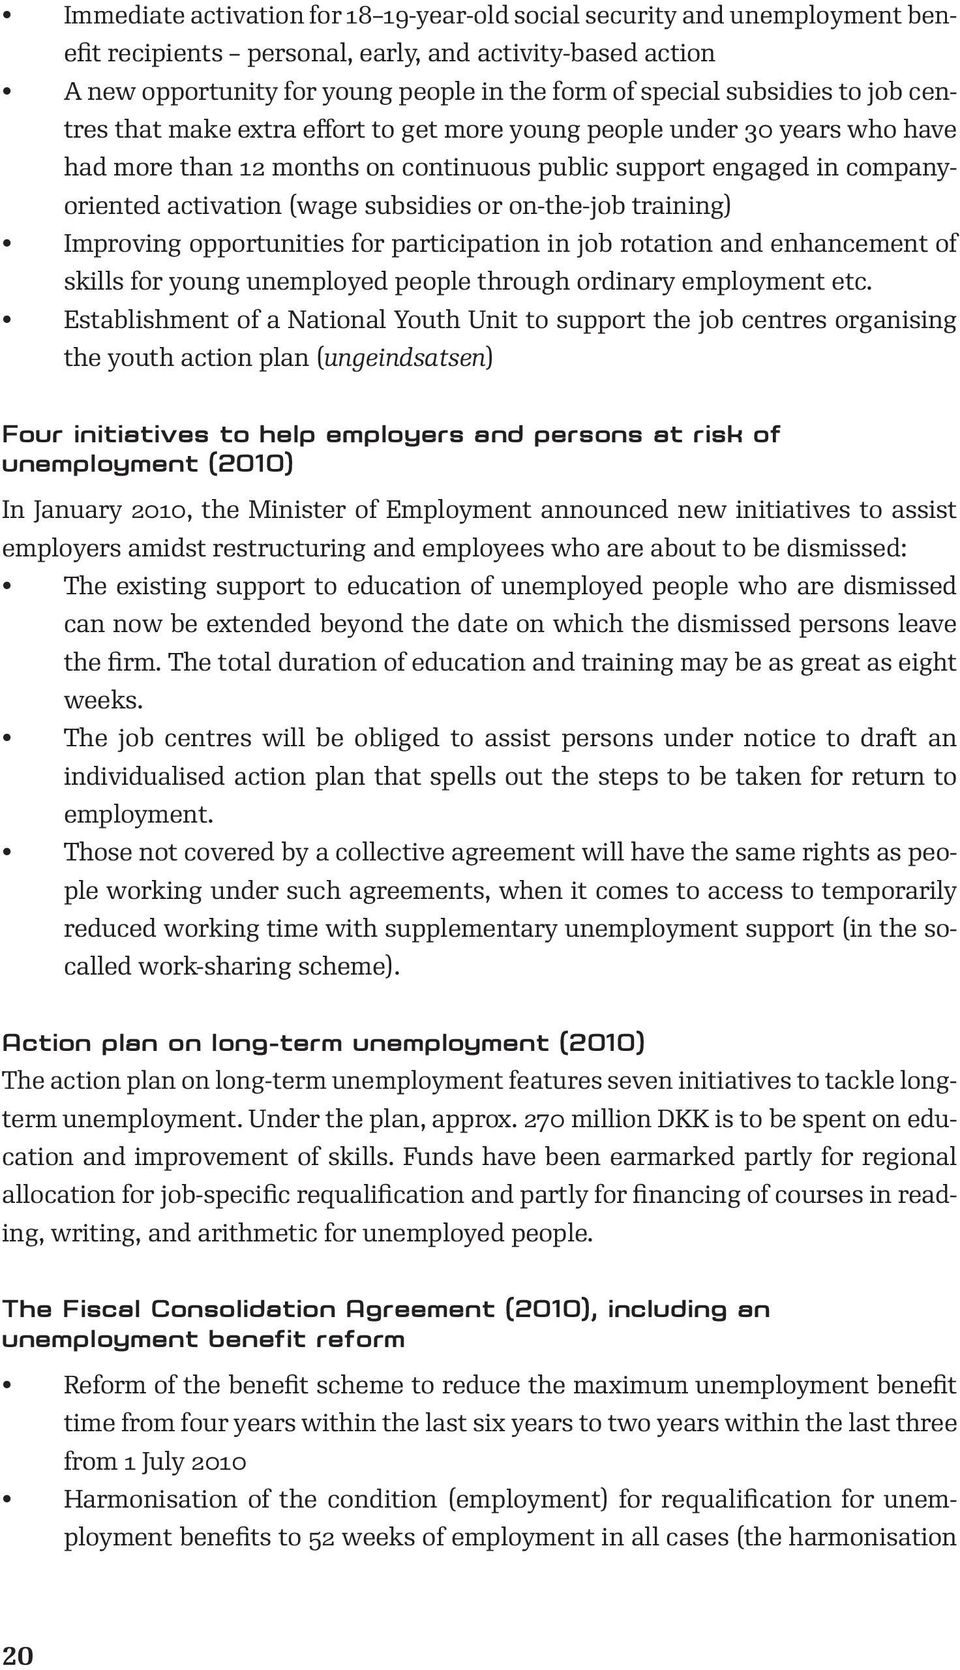 subsidies or on-the-job training) Improving opportunities for participation in job rotation and enhancement of skills for young unemployed people through ordinary employment etc.